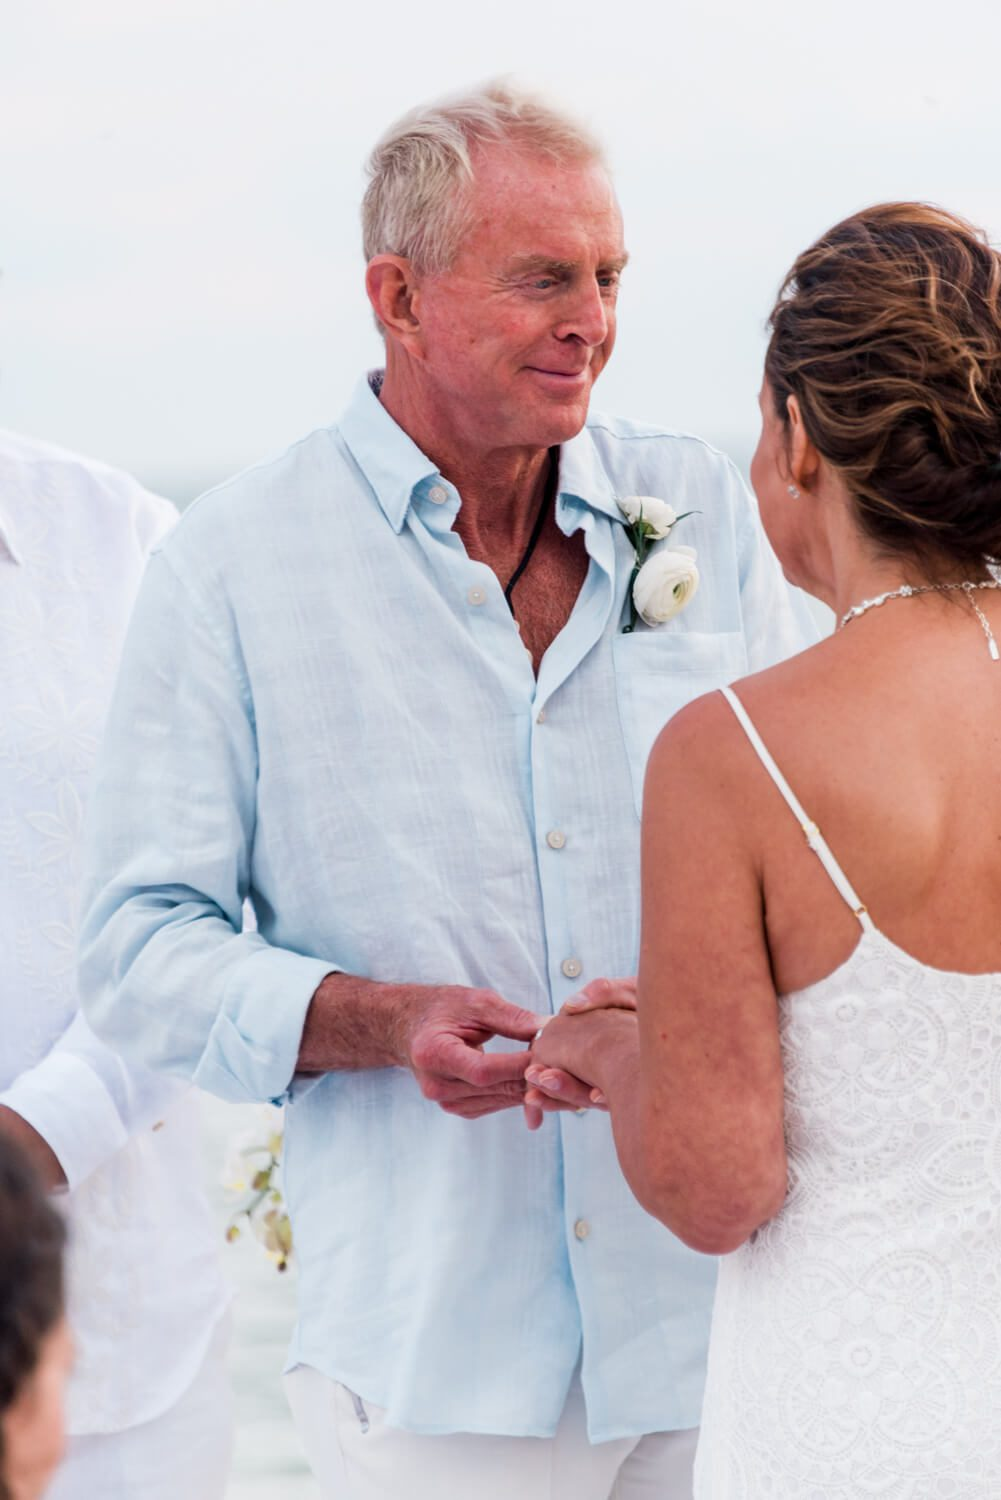 Freas Wedding Photography Key West 39 - Florida Keys Wedding Photographer - Little Palm Island Wedding